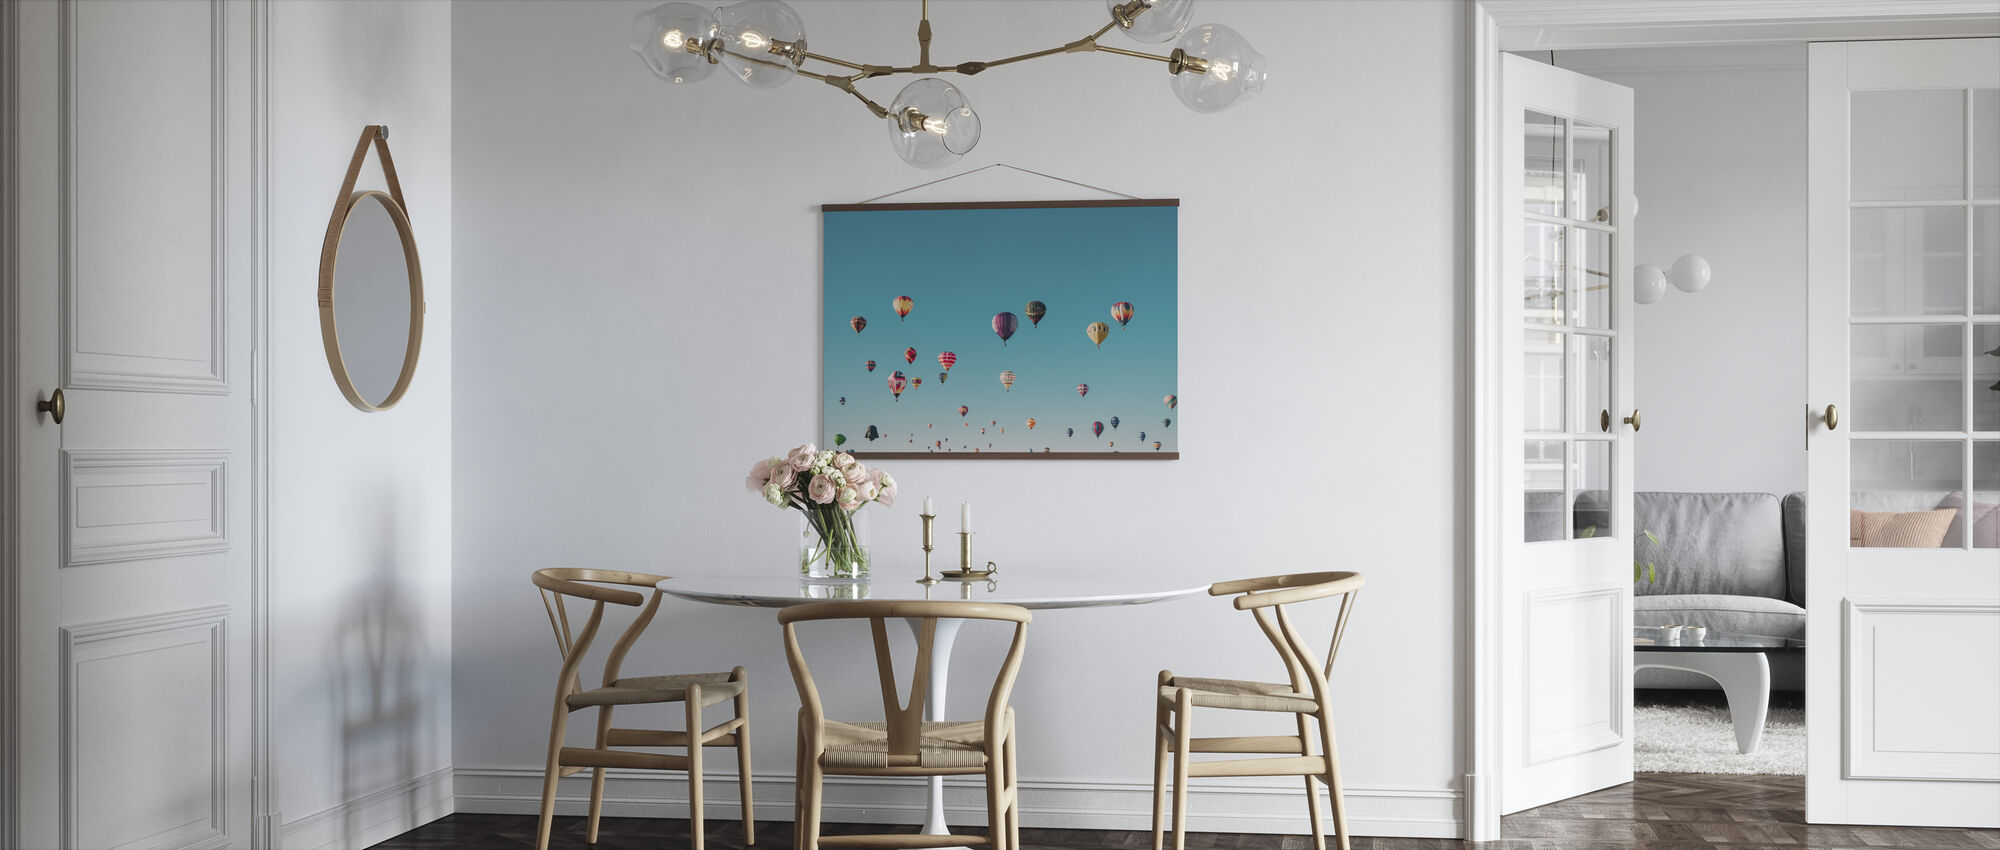 Hot Air Balloons - Poster - Kitchen